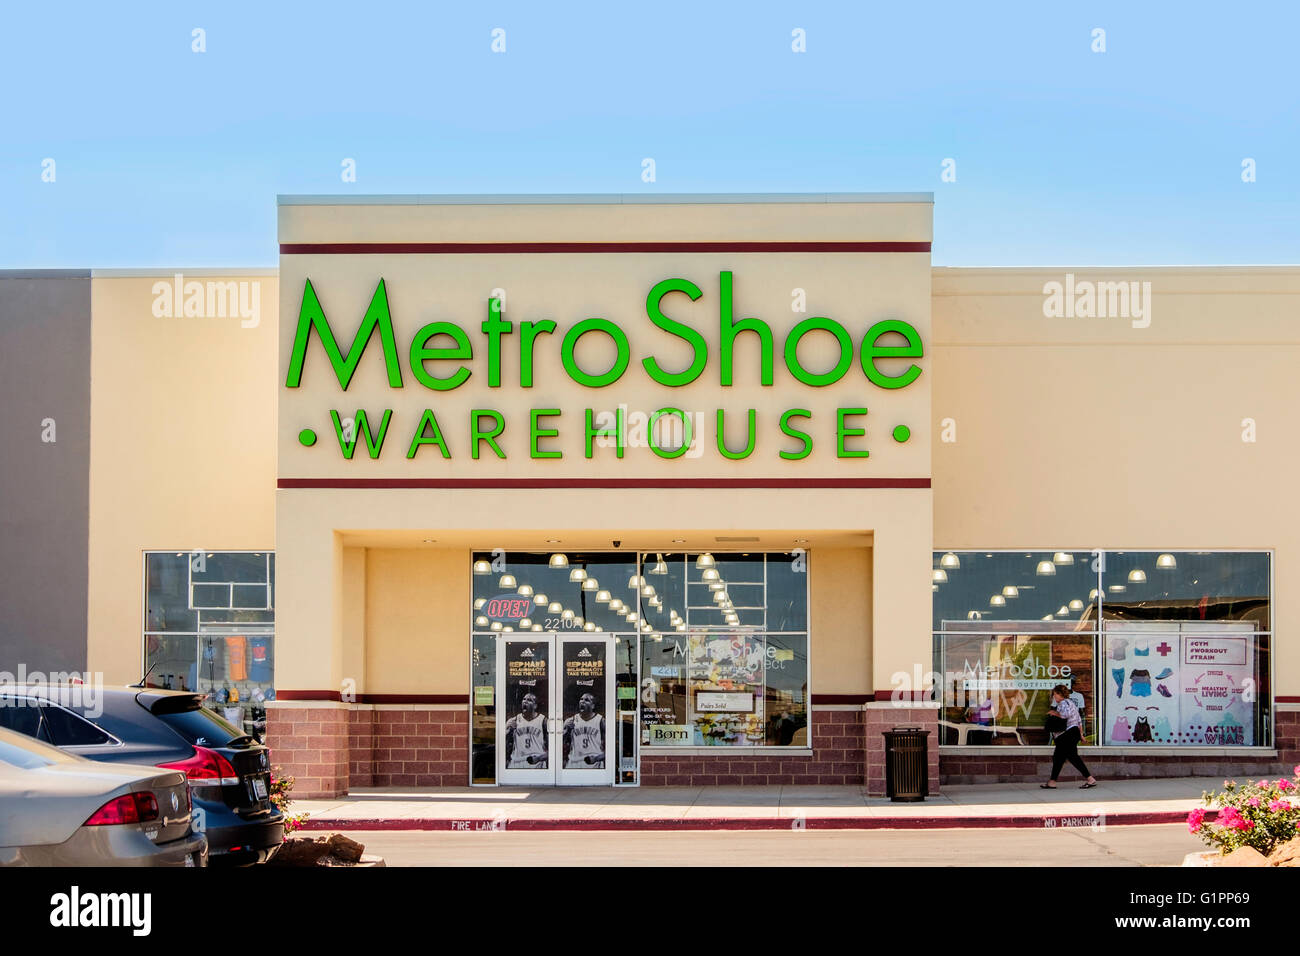 Metro shoe warehouse okc